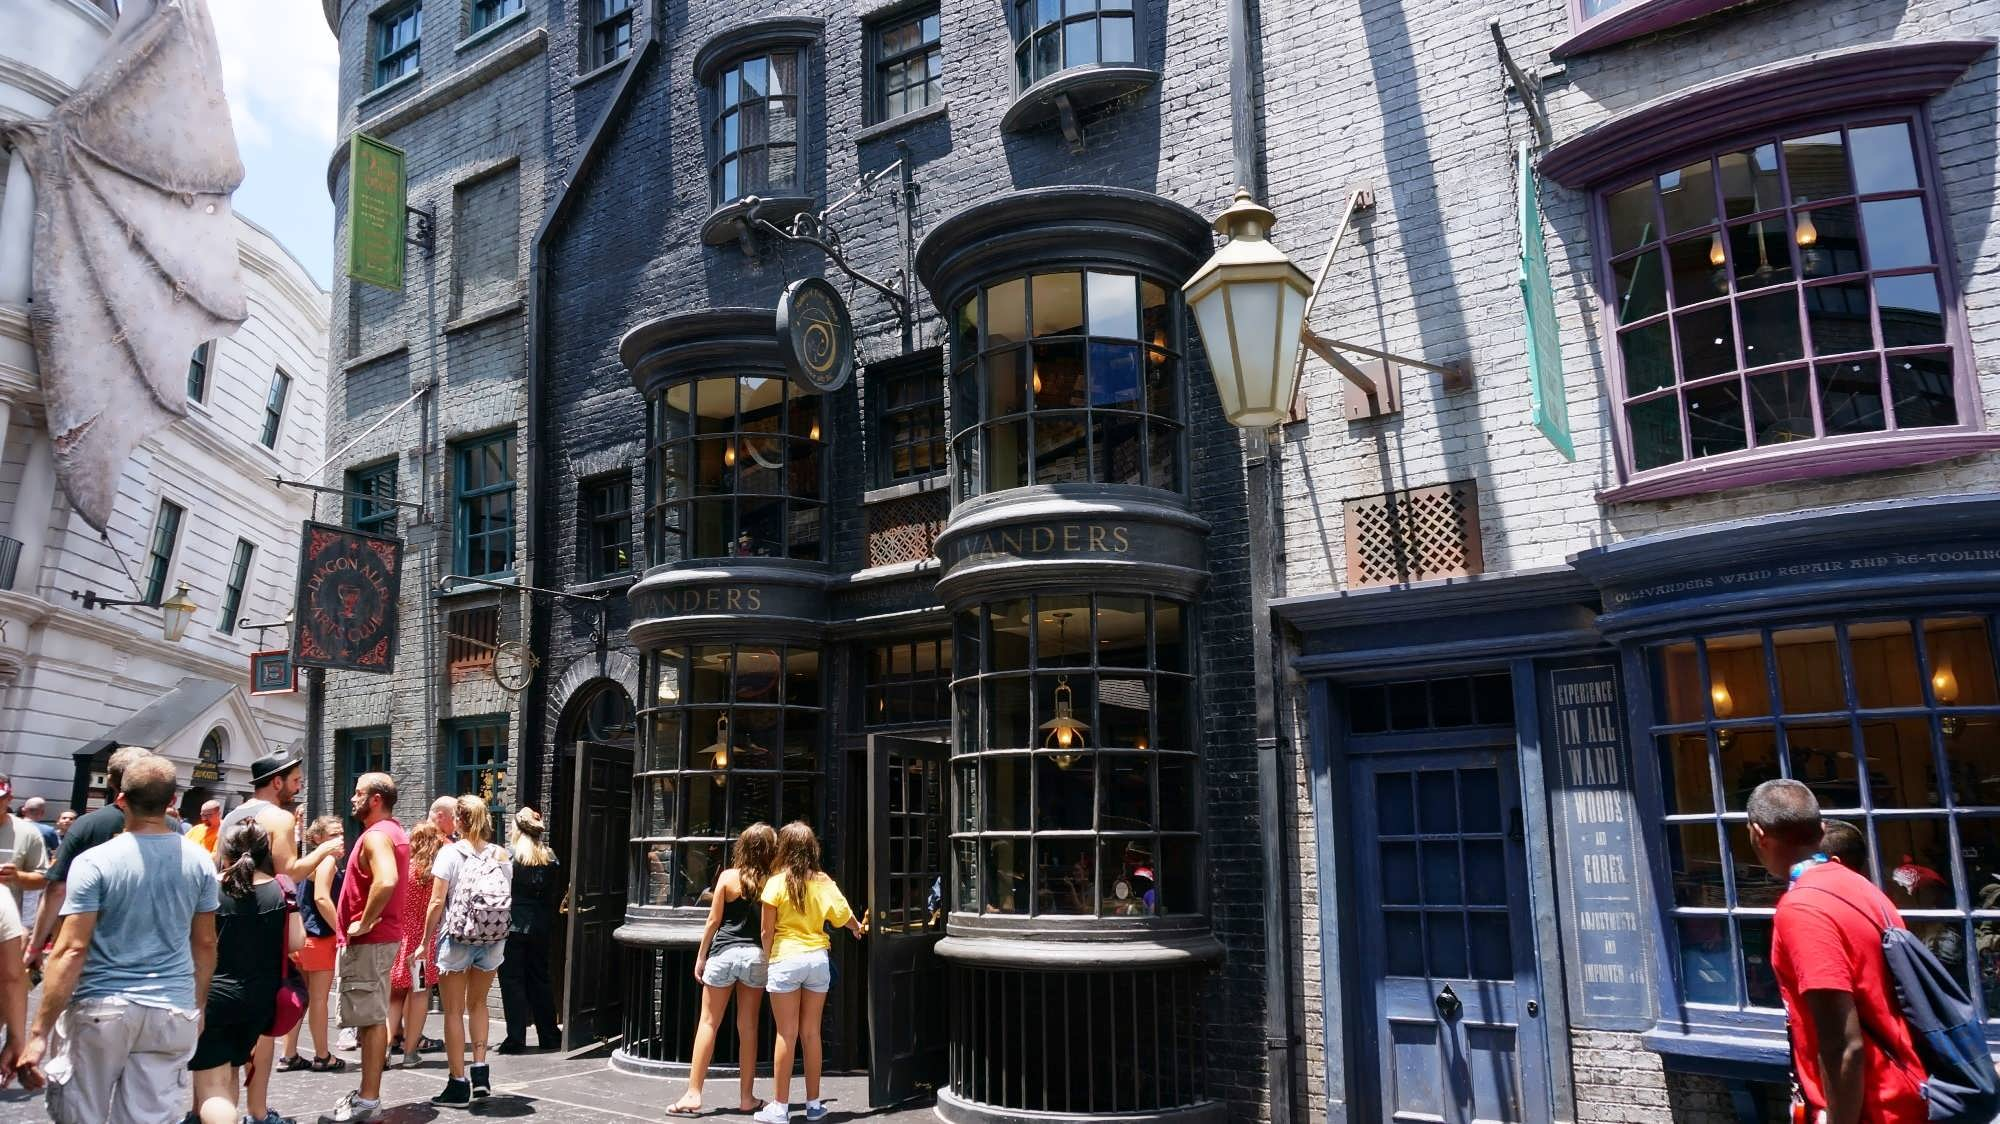 Ollivander's Wand Shop at Diagon Alley